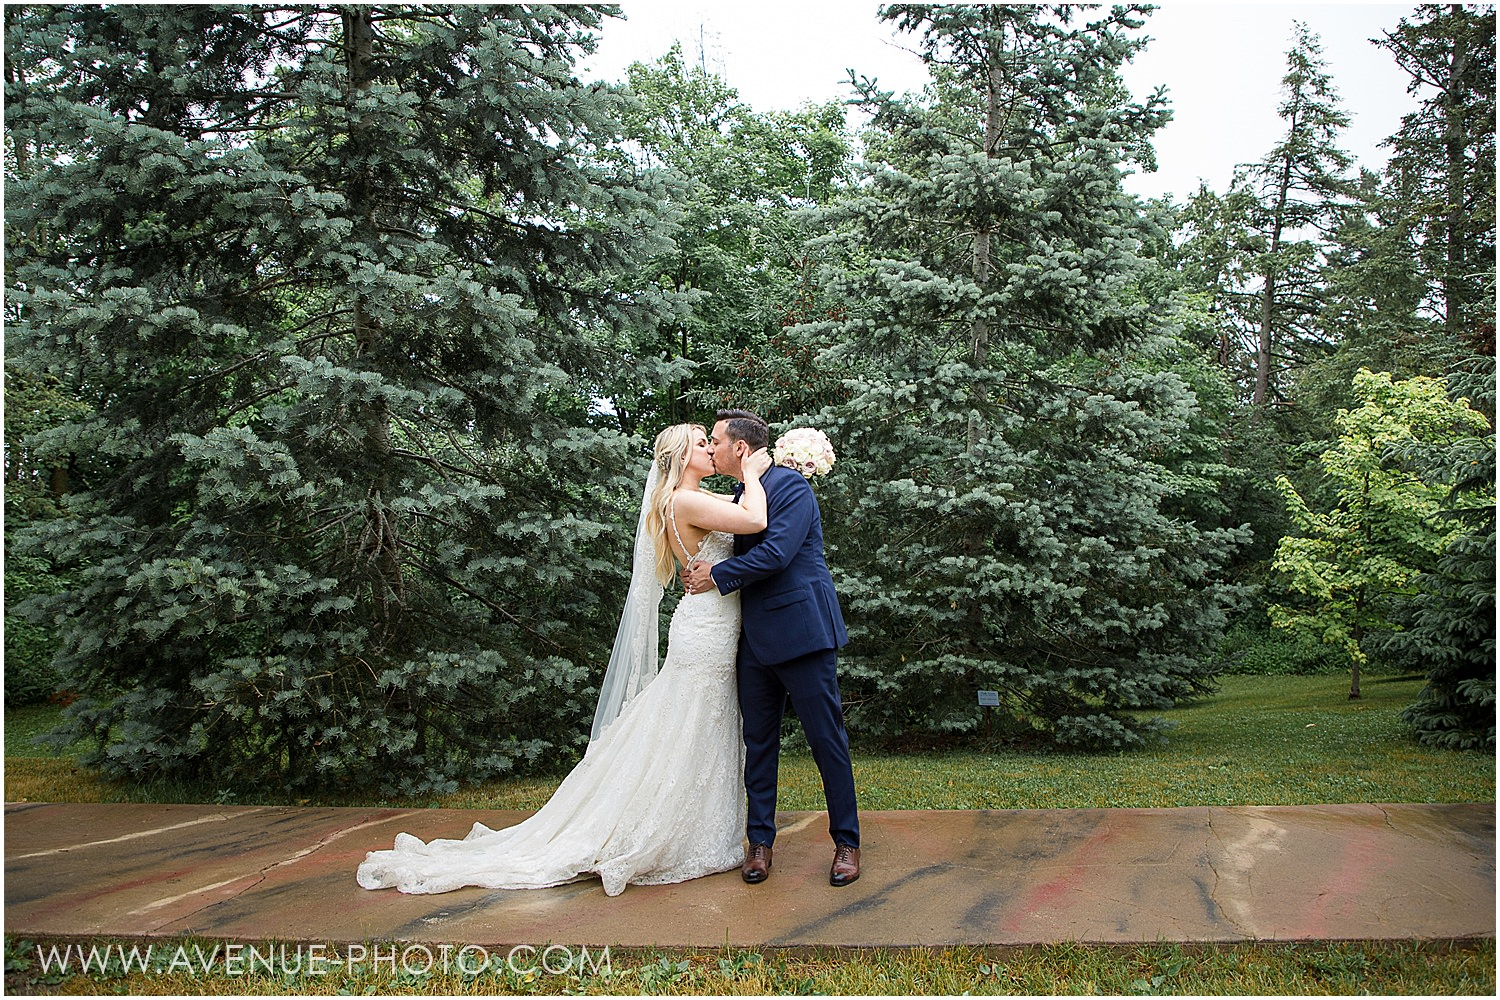 McMichael Gallery Summer Wedding Photos, Avenue Photo, Paramount Events Wedding